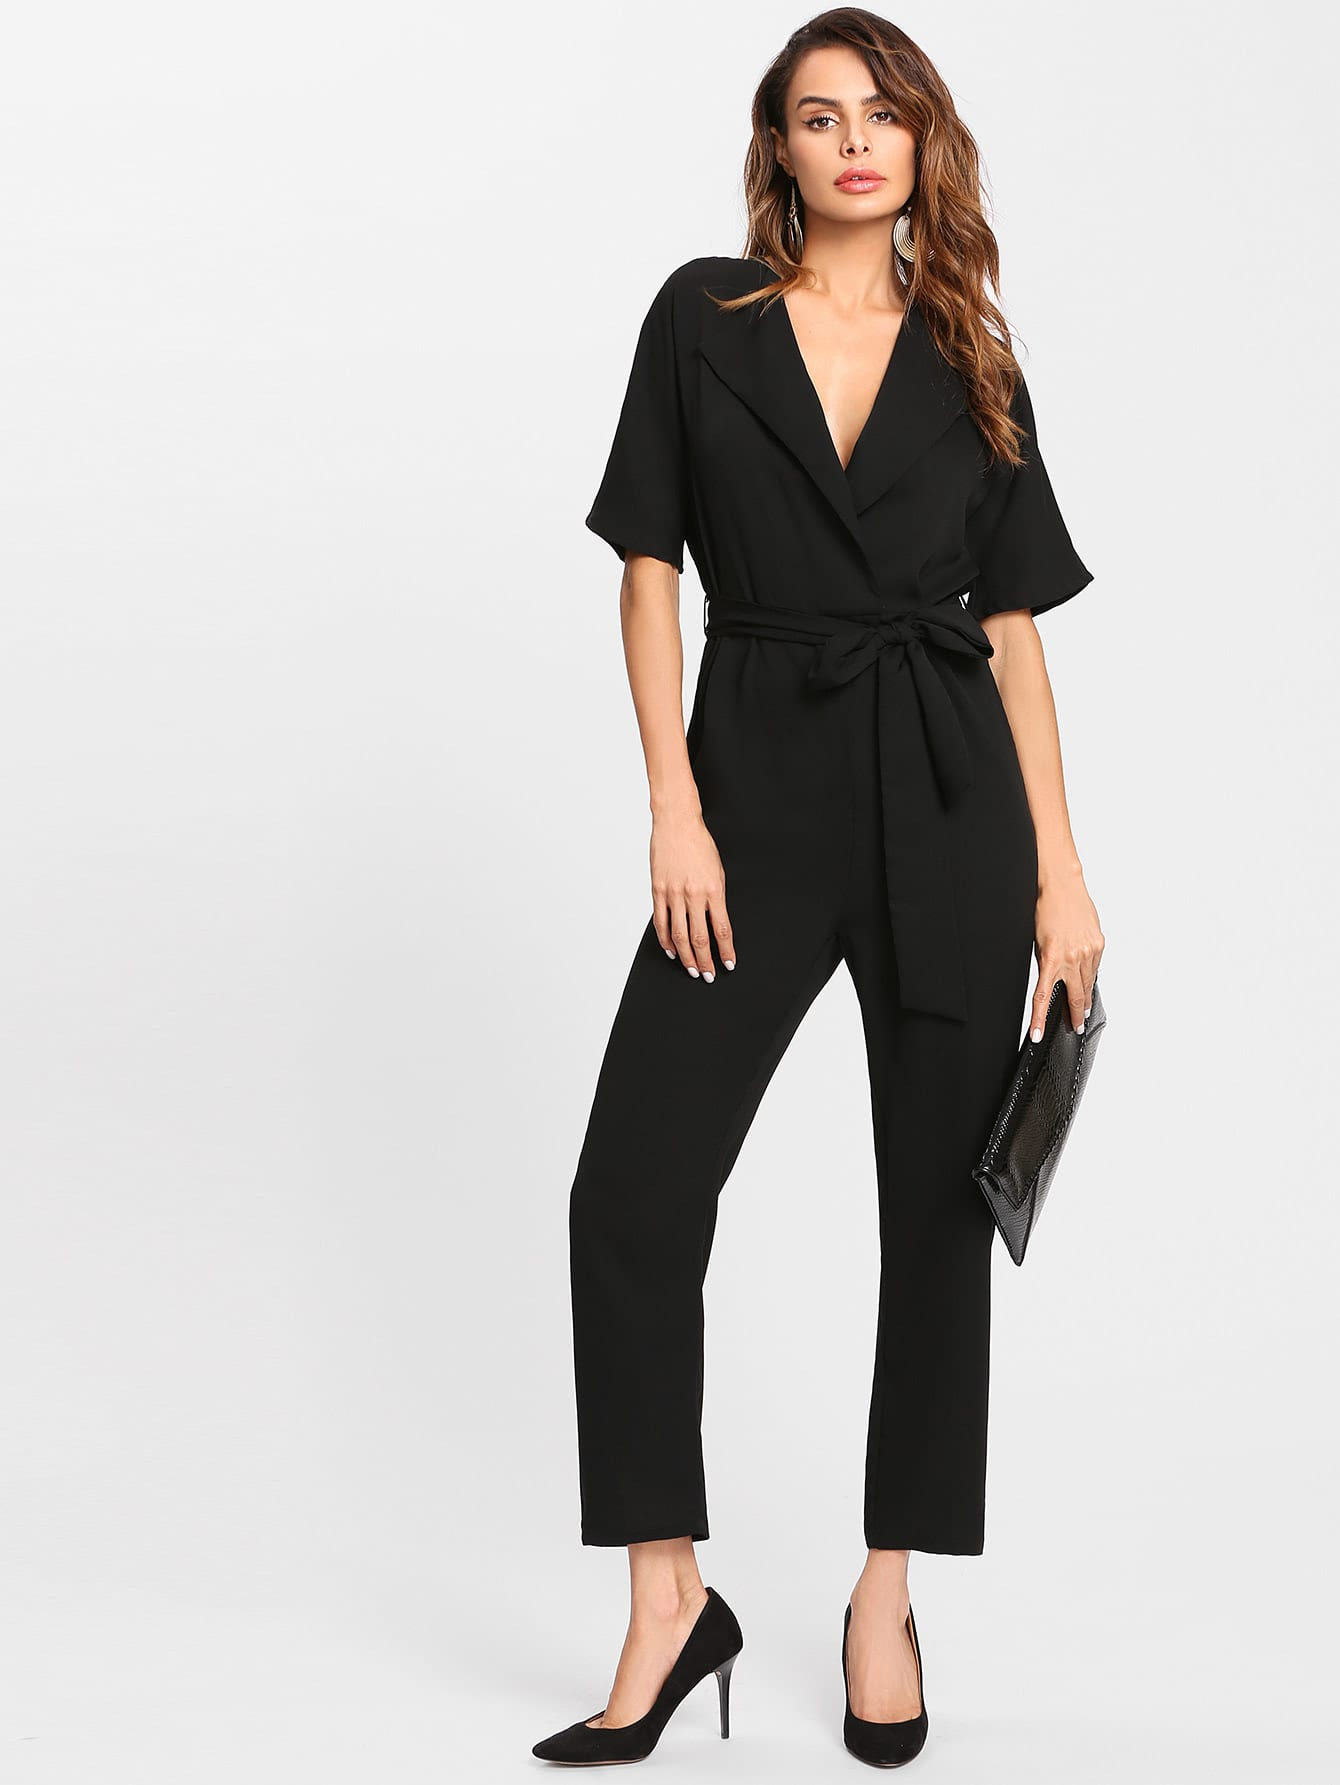 Notch Collar Self Belted Solid Jumpsuit self belted solid dress